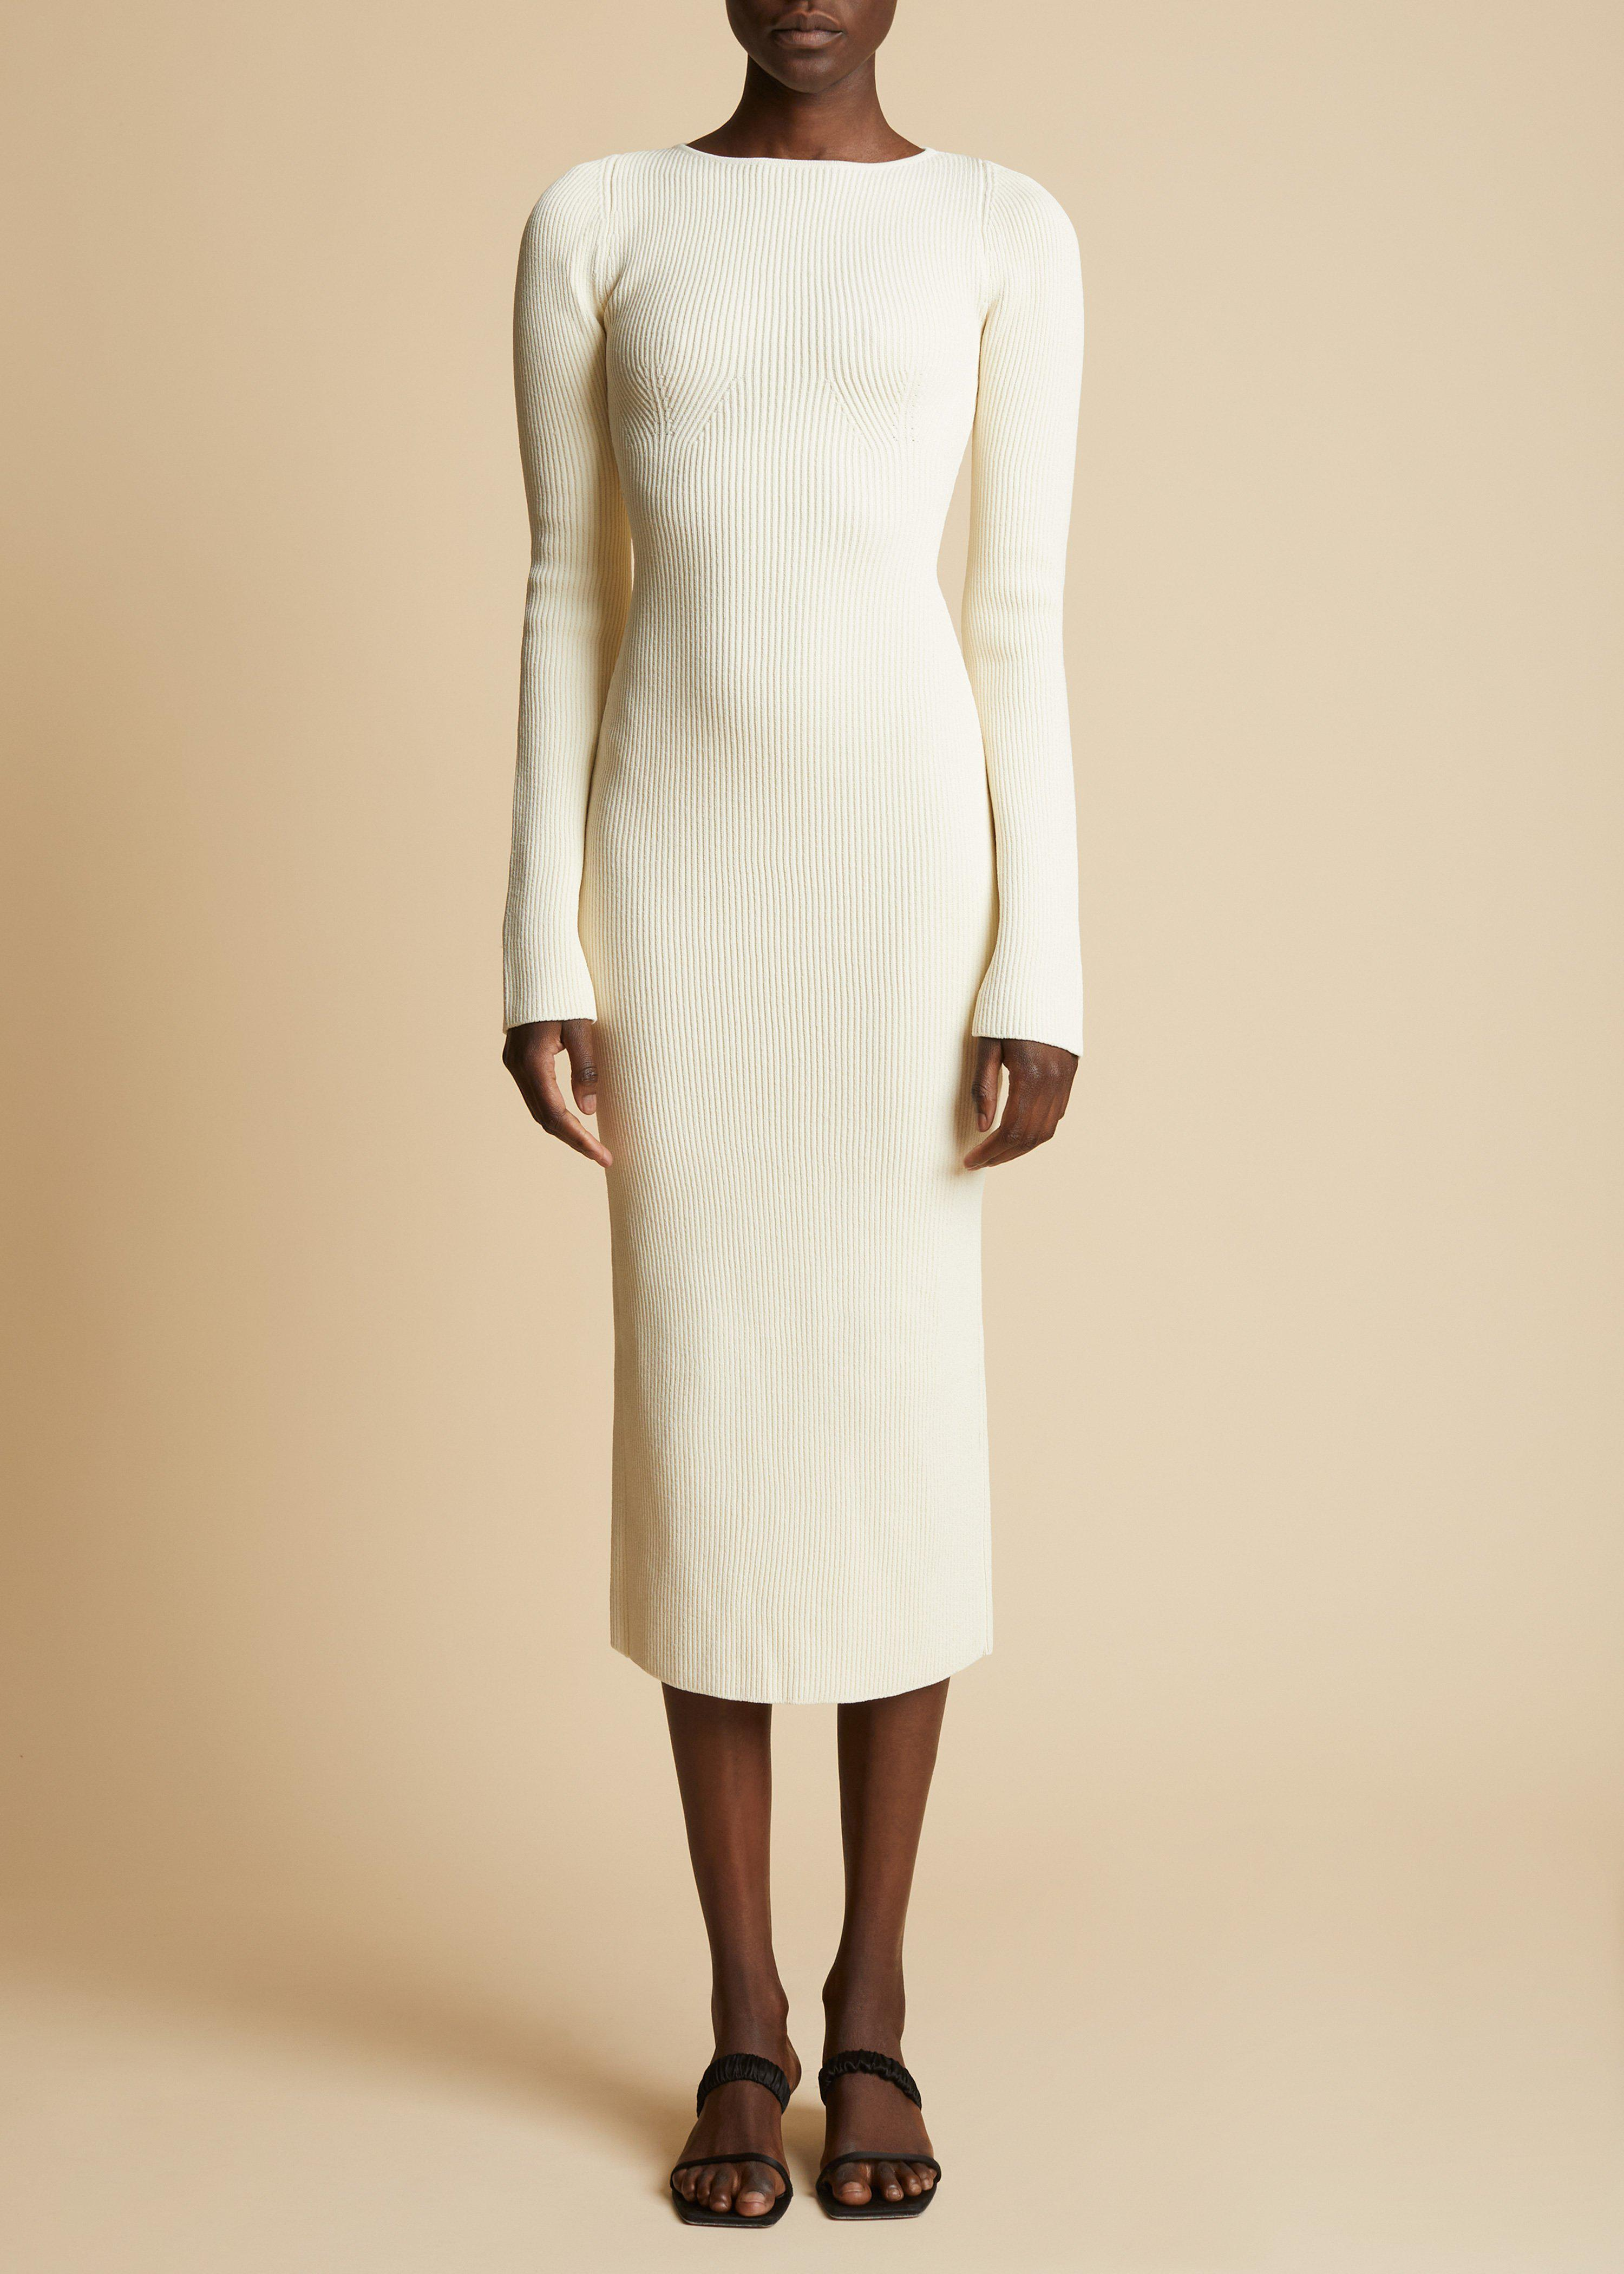 The Vivia Dress in Ivory 1